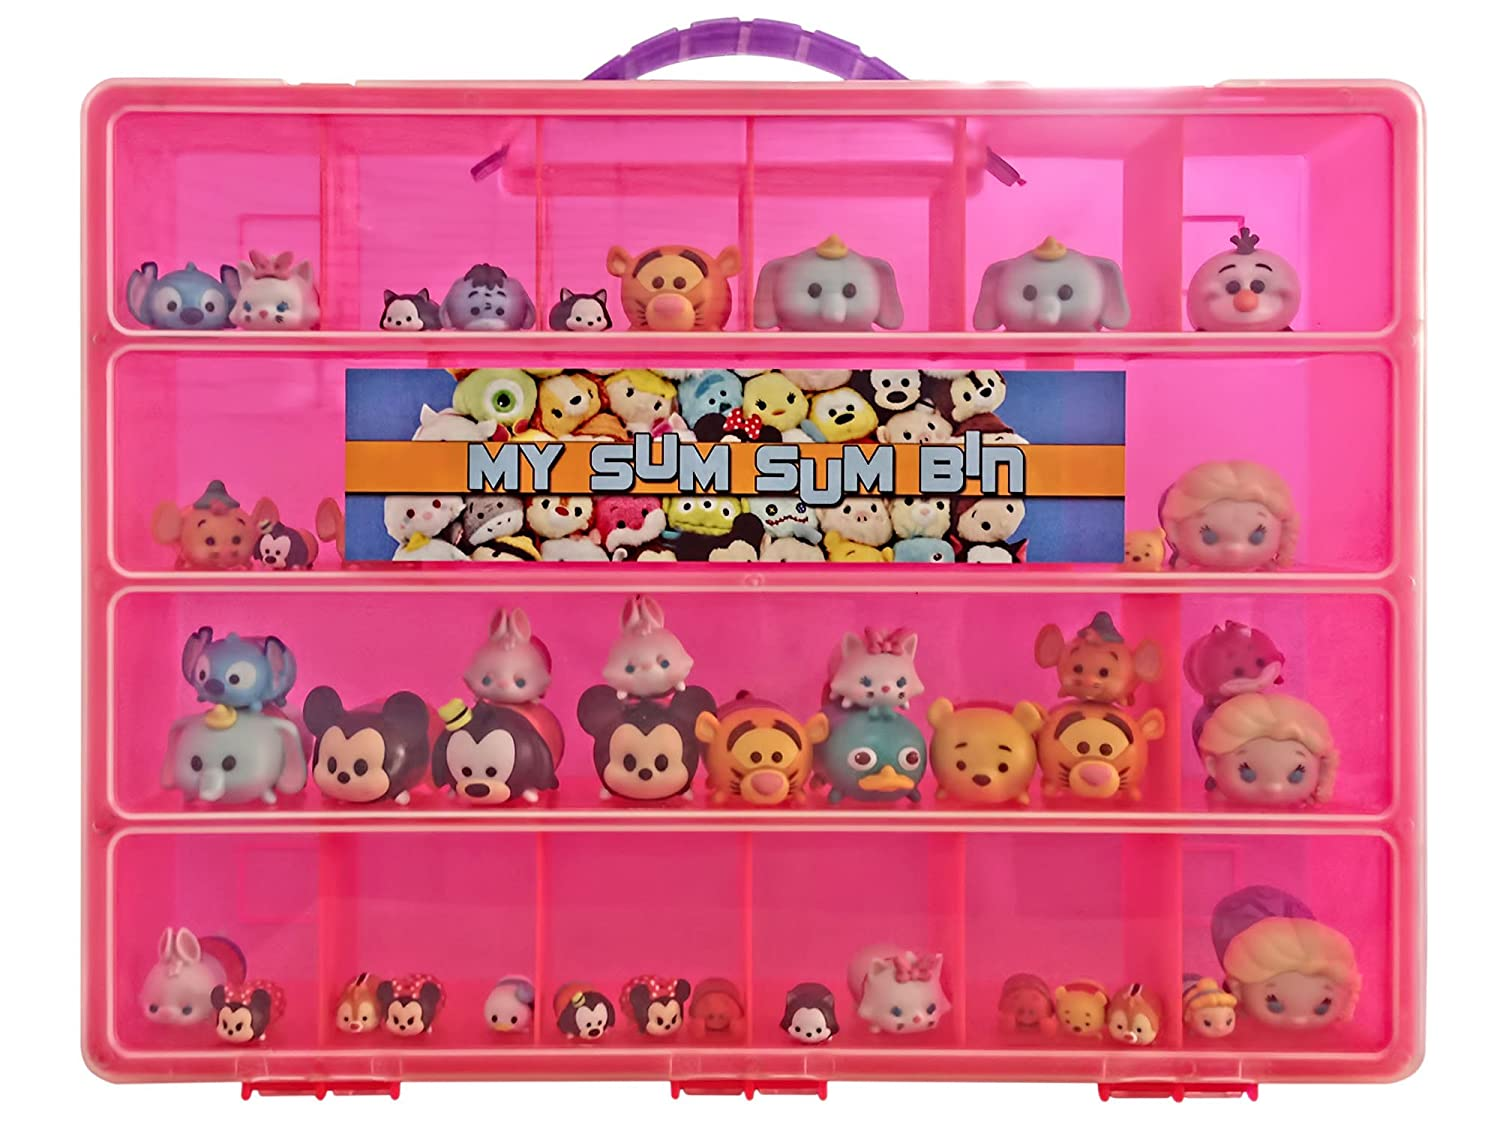 Tsum Tsum TM Compatible Organizer -My Sum Sum Bin Is The Perfect Tsum Tsum TM Compatible Storage Box- Fits Up to 50 Tsum Tsum Figures In All Styles - Large Sturdy Case And Carrying Handle (Pink)